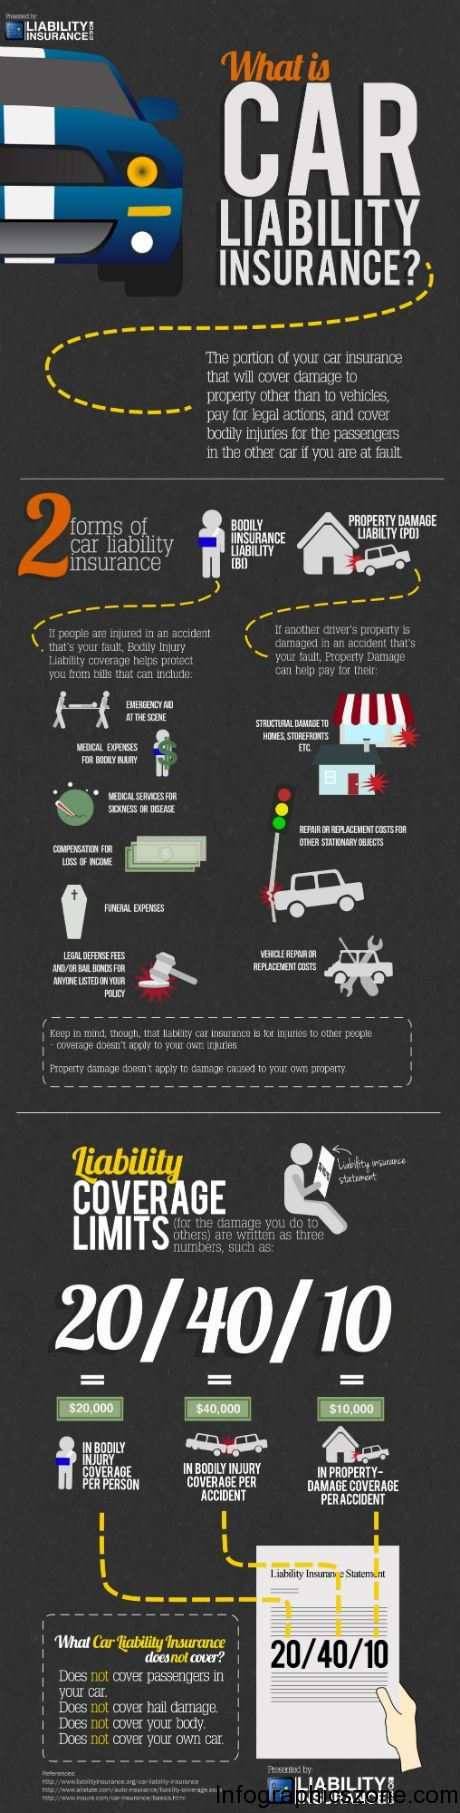 Liability of Car Insurance [Infographic] Life insurance